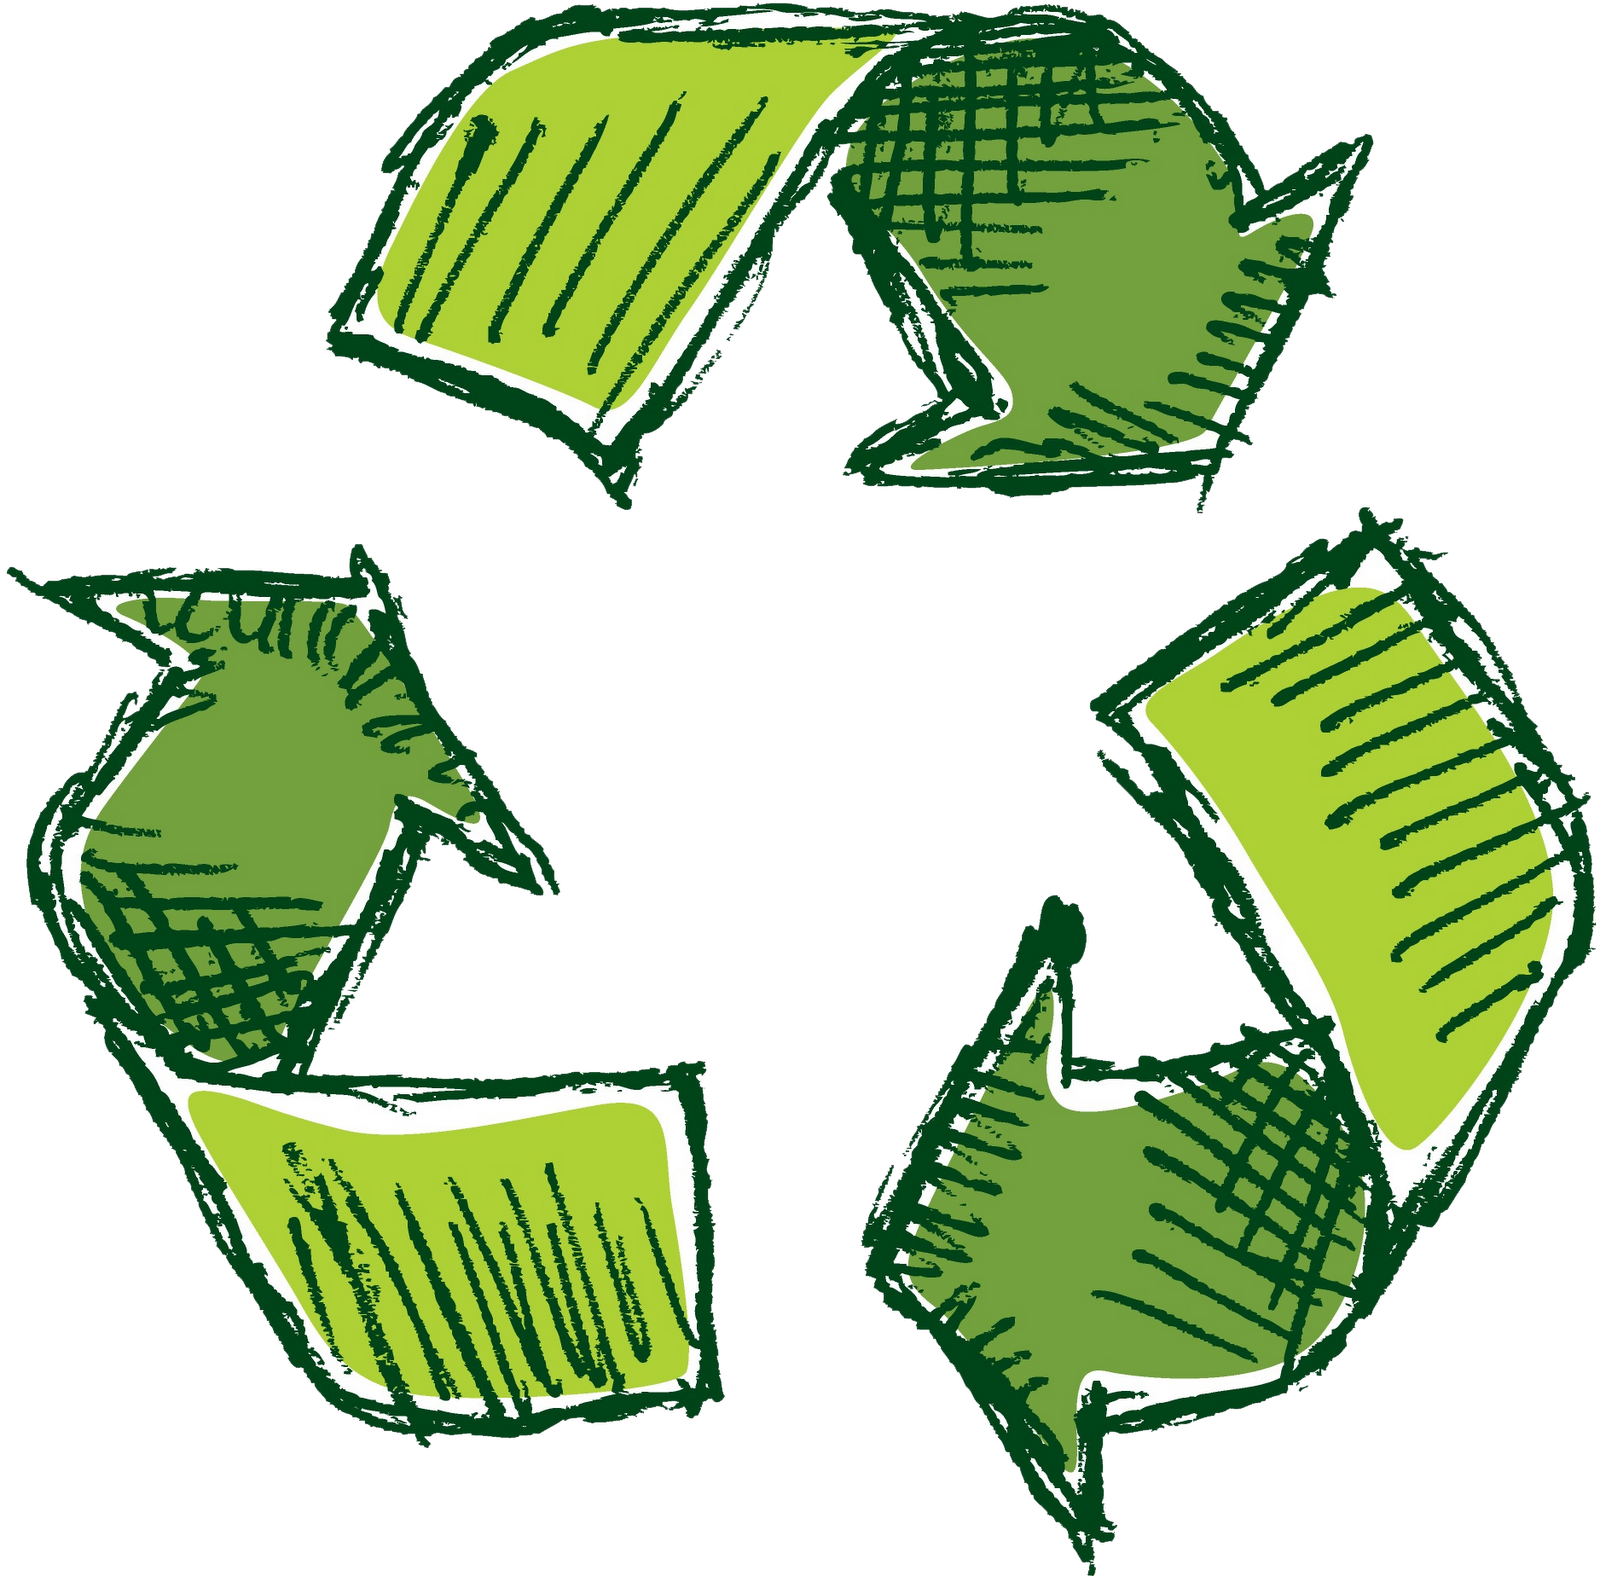 jpg free stock Png transparent free images. Recycle drawing